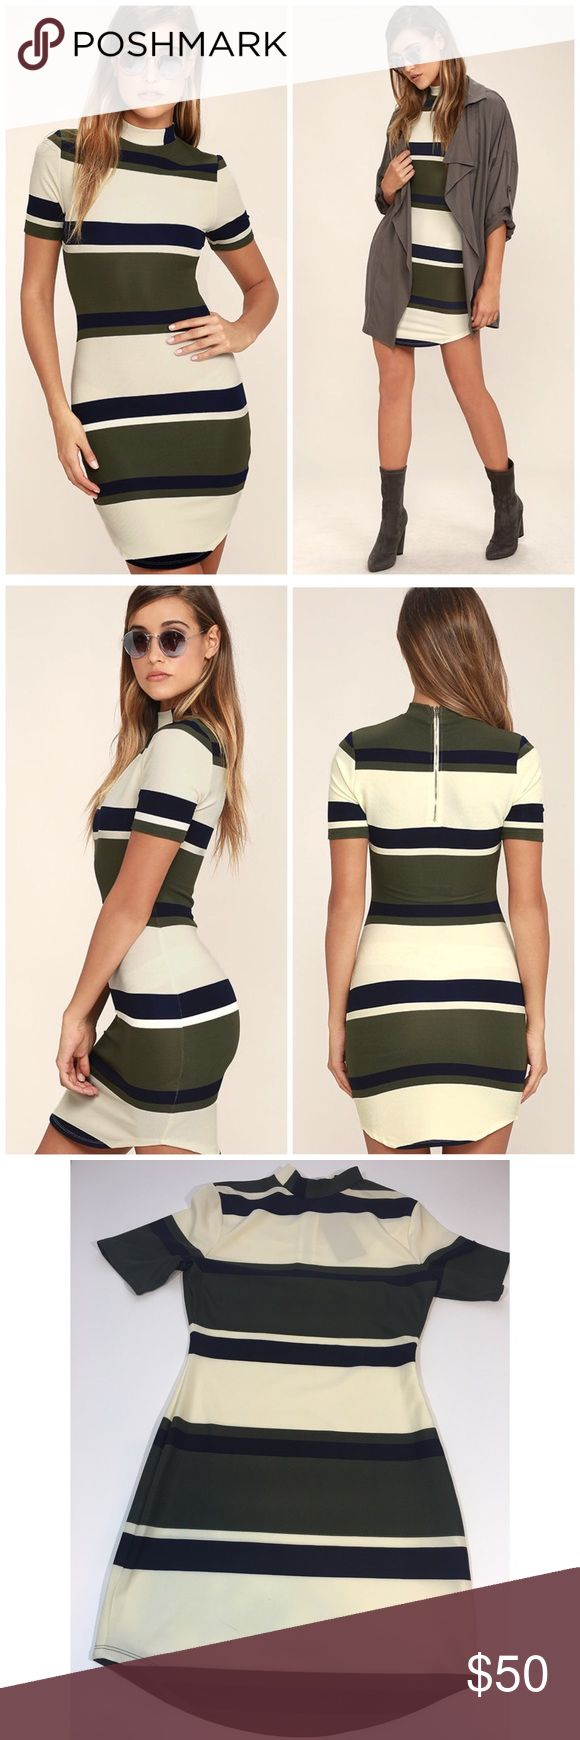 NWT JOA Striped Bodycon Dress So cute and perfectly on trend! High neckline. Brand new with tags. Size small. No trades!! 012317120tmr Nasty Gal Dresses Mini